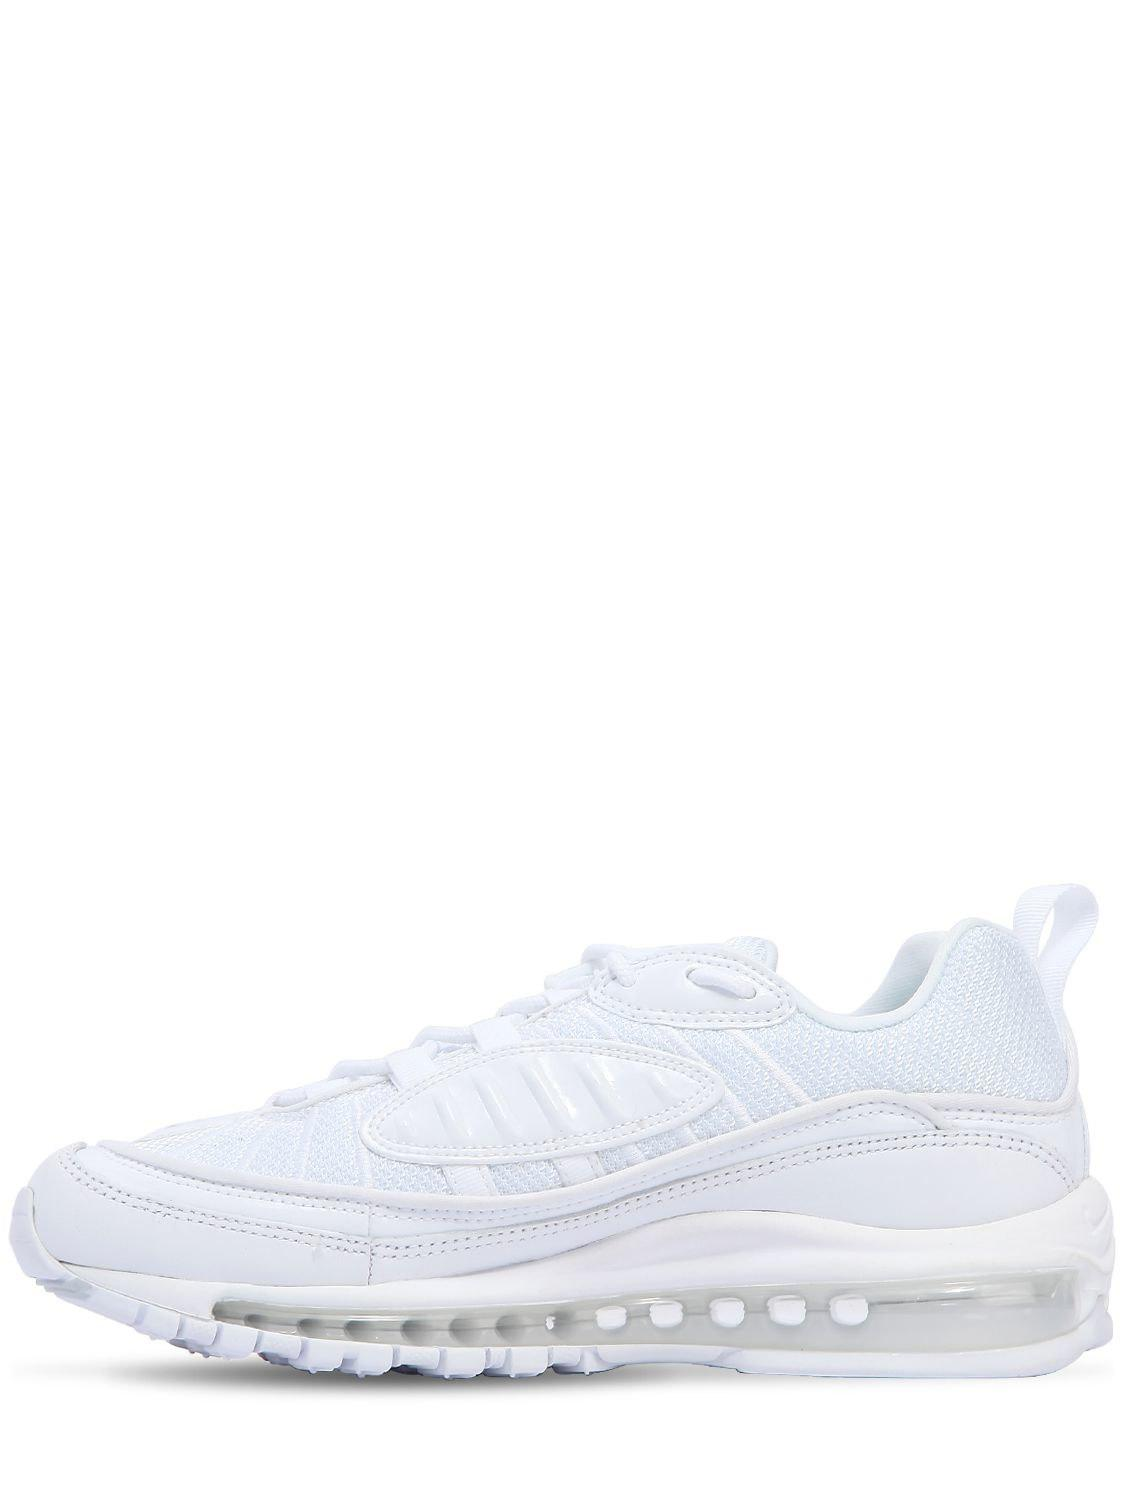 Nike Air Max 98 Leather Sneakers in White